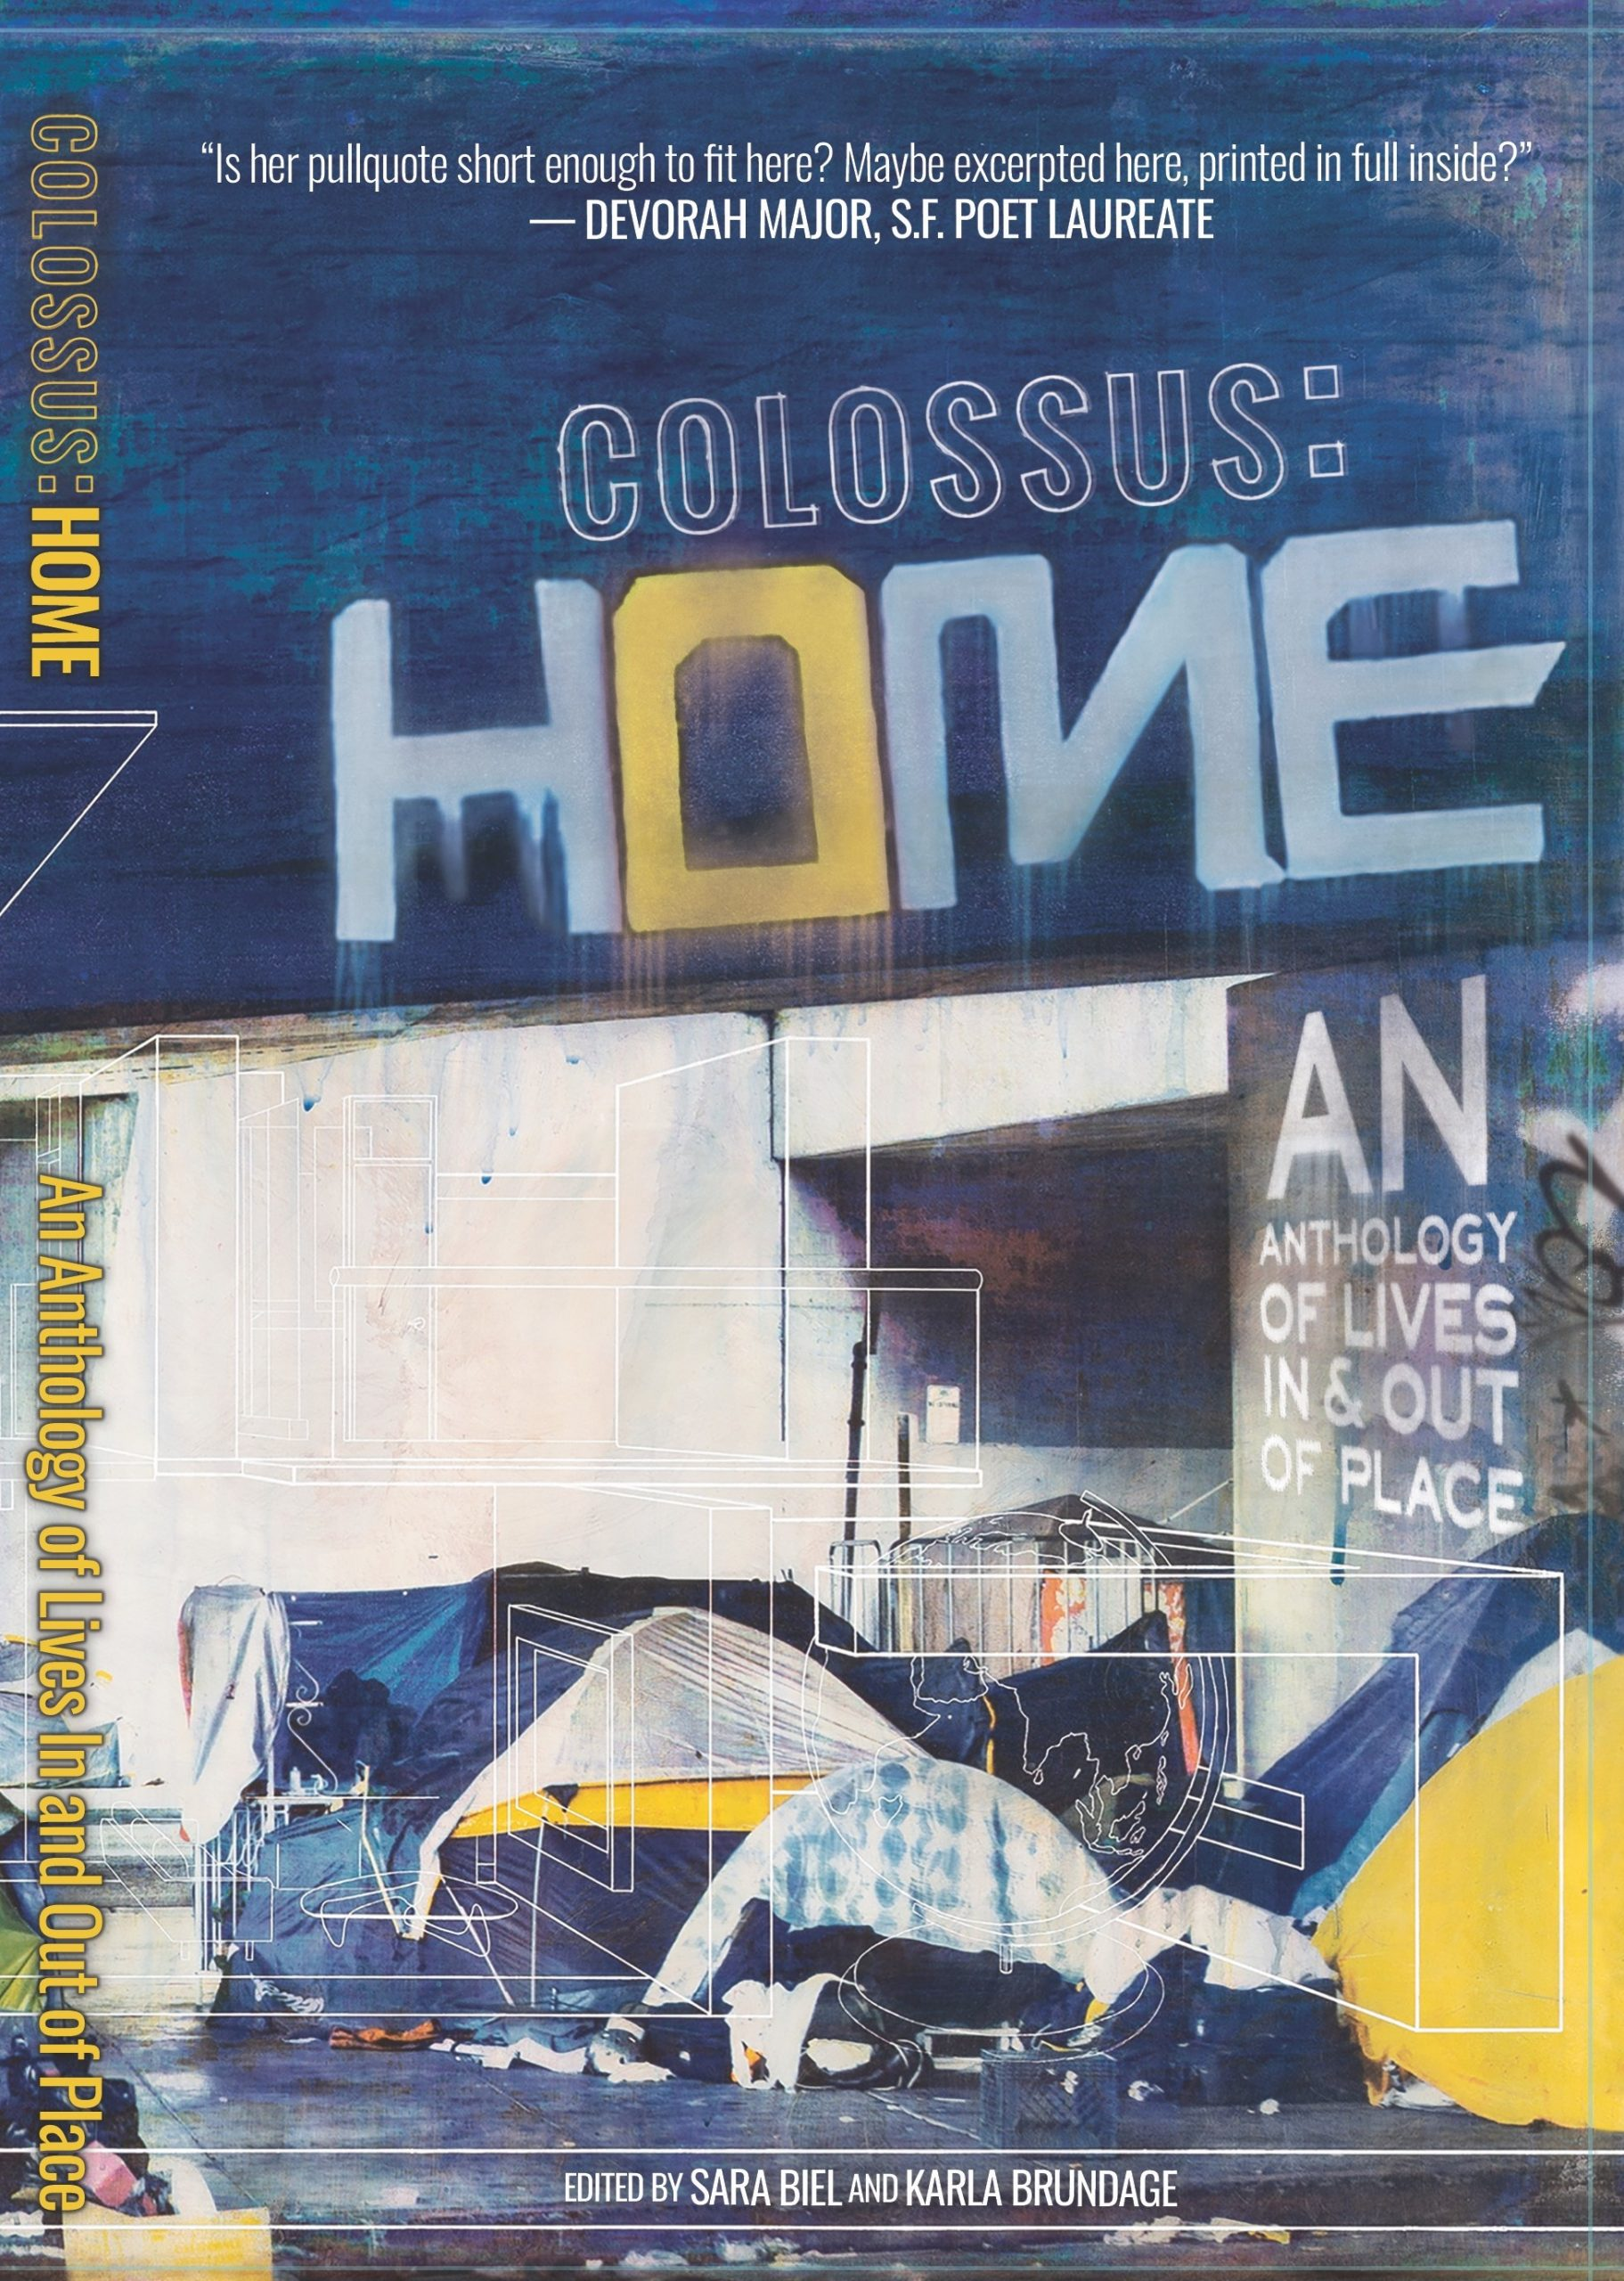 Colossus-HOME book cover